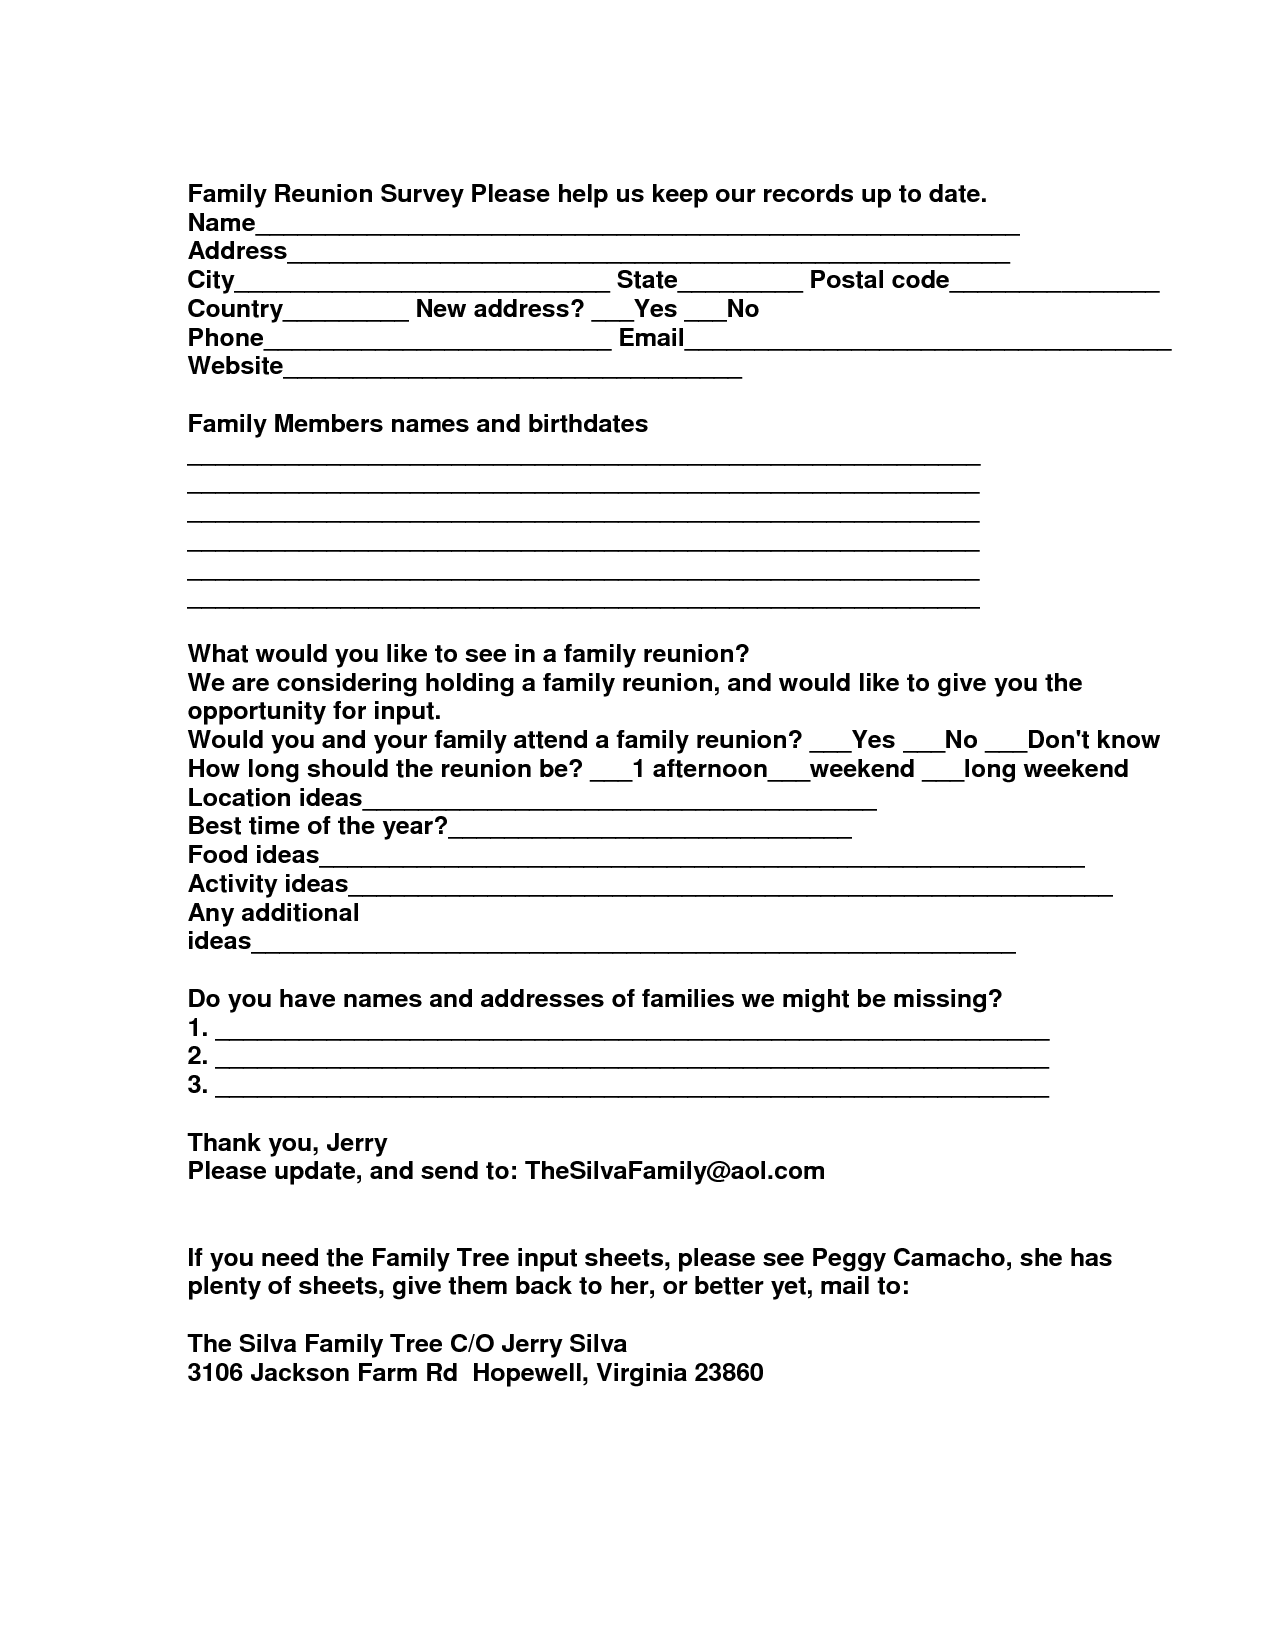 family reunion food ideas | Family Reunion Survey Please help us ...